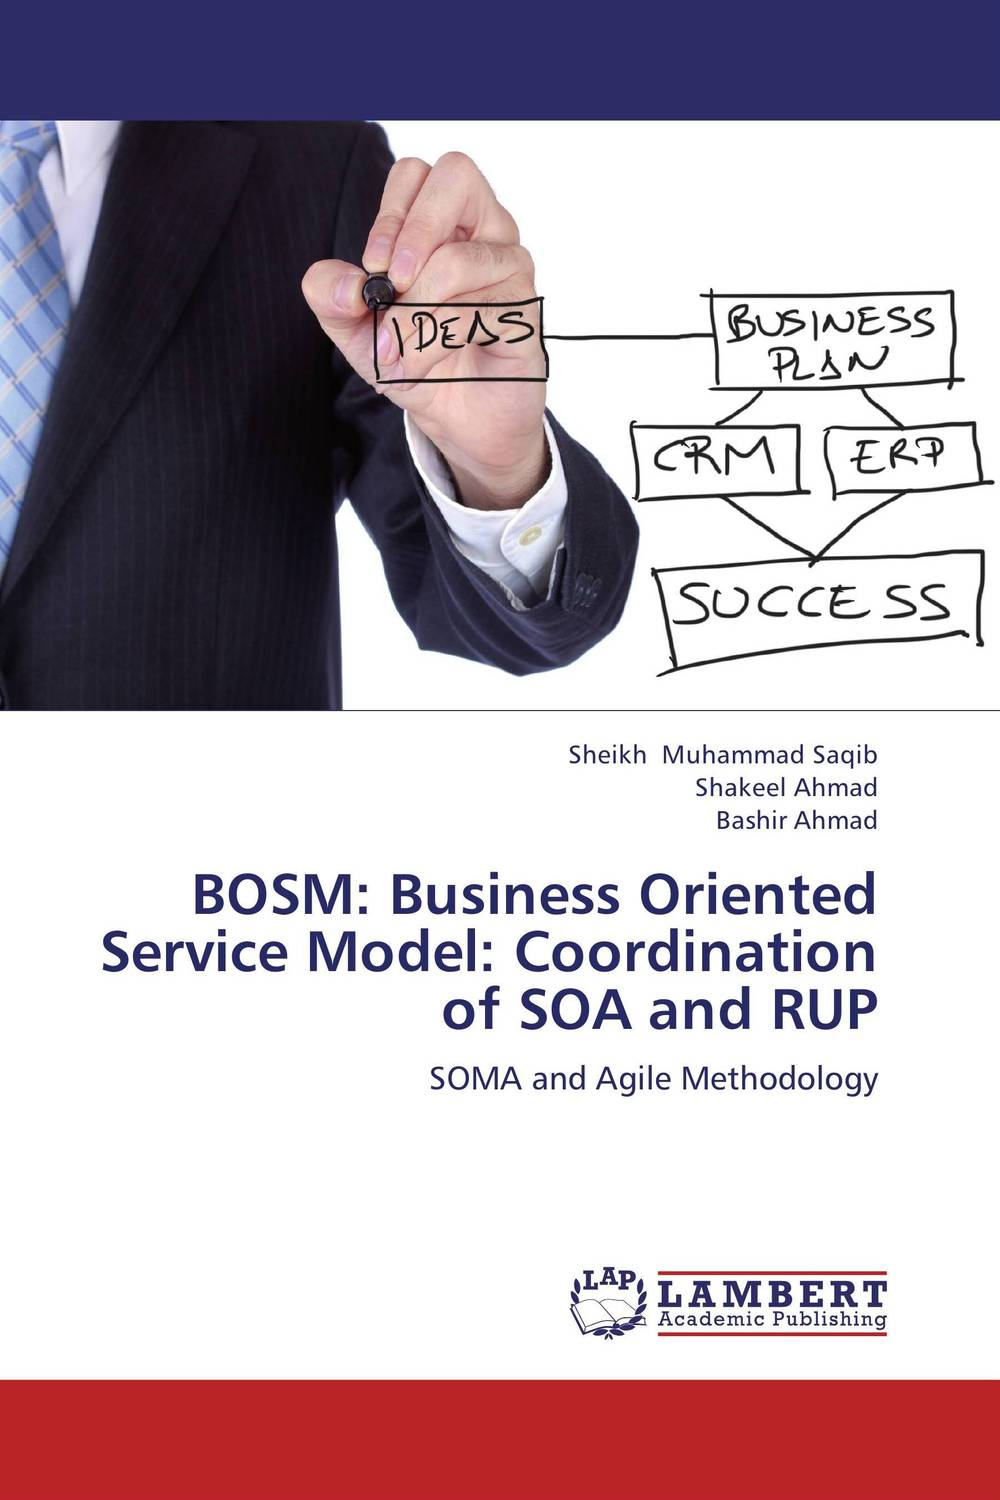 BOSM: Business Oriented Service Model: Coordination of SOA and RUP ноутбук acer extensa ex2540 33e9 core i3 6006u 2ghz 15 6 4gb 2tb hd graphics 520 w10home64 nx efher 005